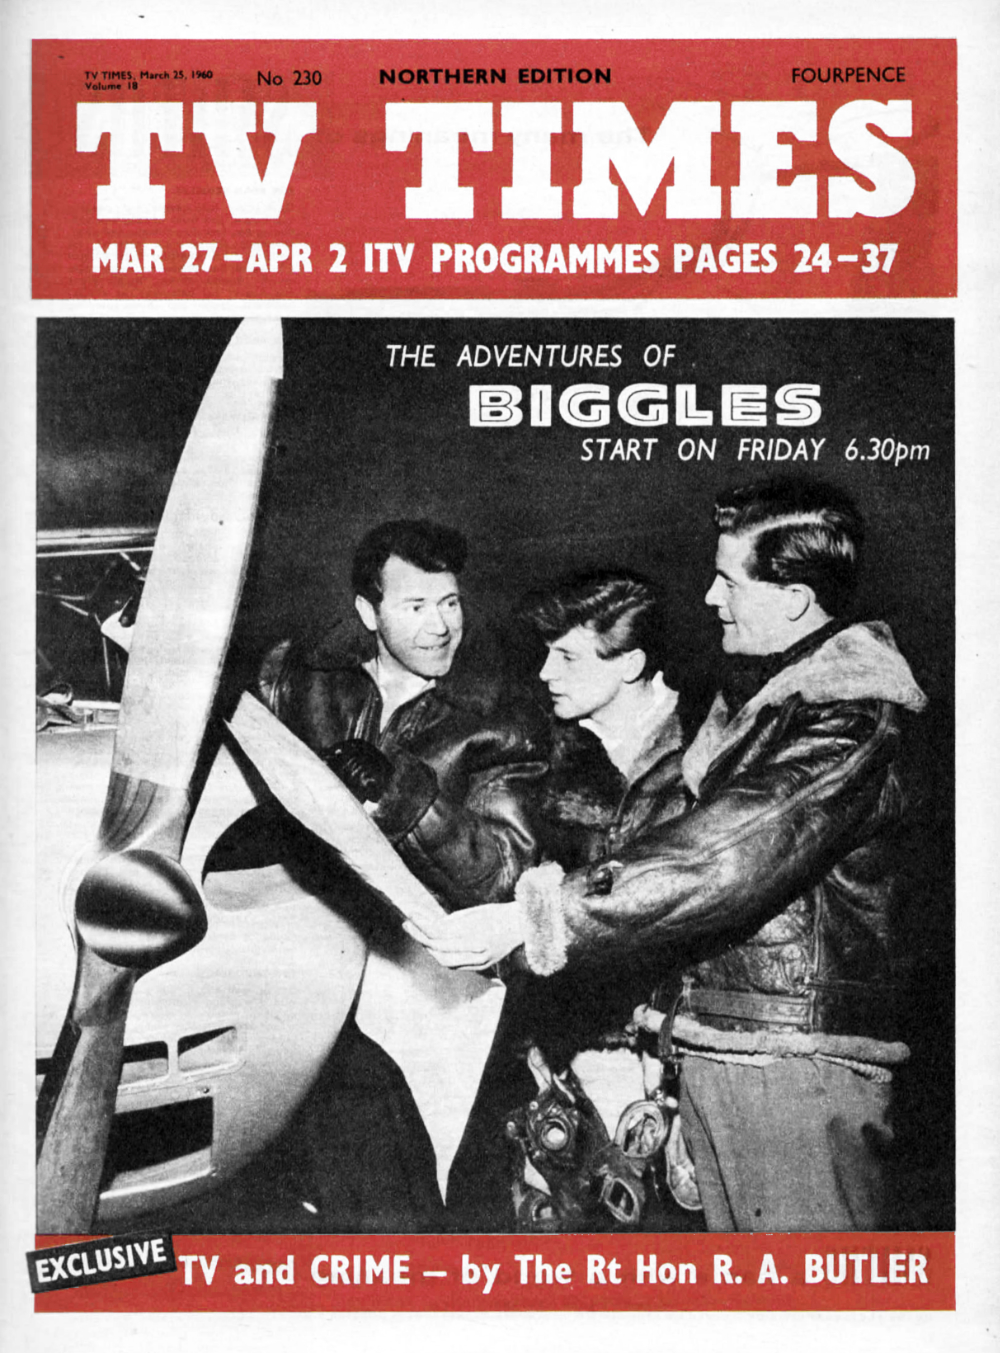 John Leyton, Neville Whiting, and David Drummond in Biggles (1960)